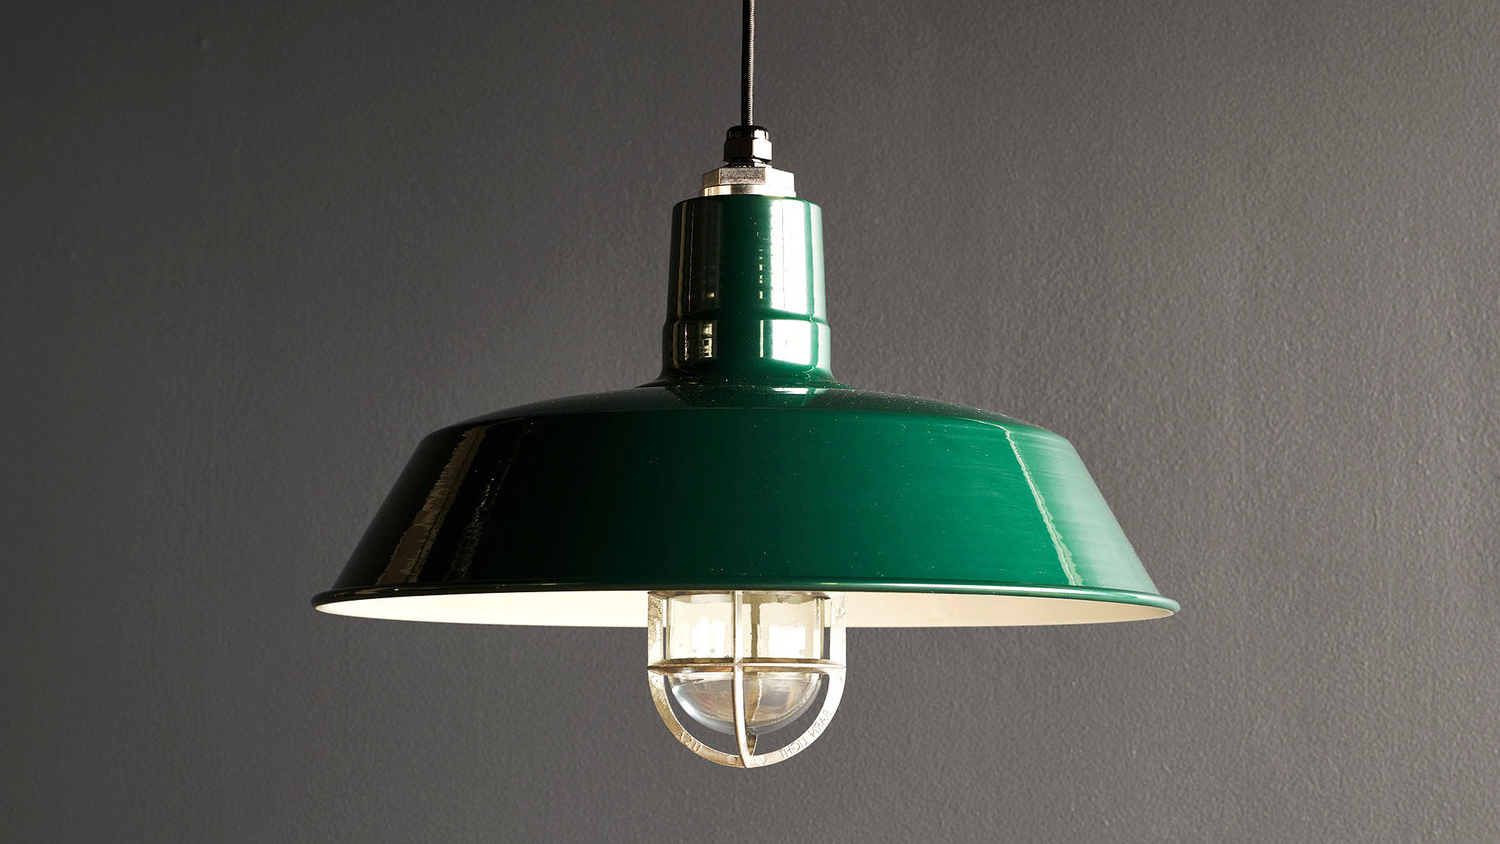 Well Known Score Big Savings: Brayden Studio Melora 1 Light Single For Melora 1 Light Single Geometric Pendants (View 13 of 20)